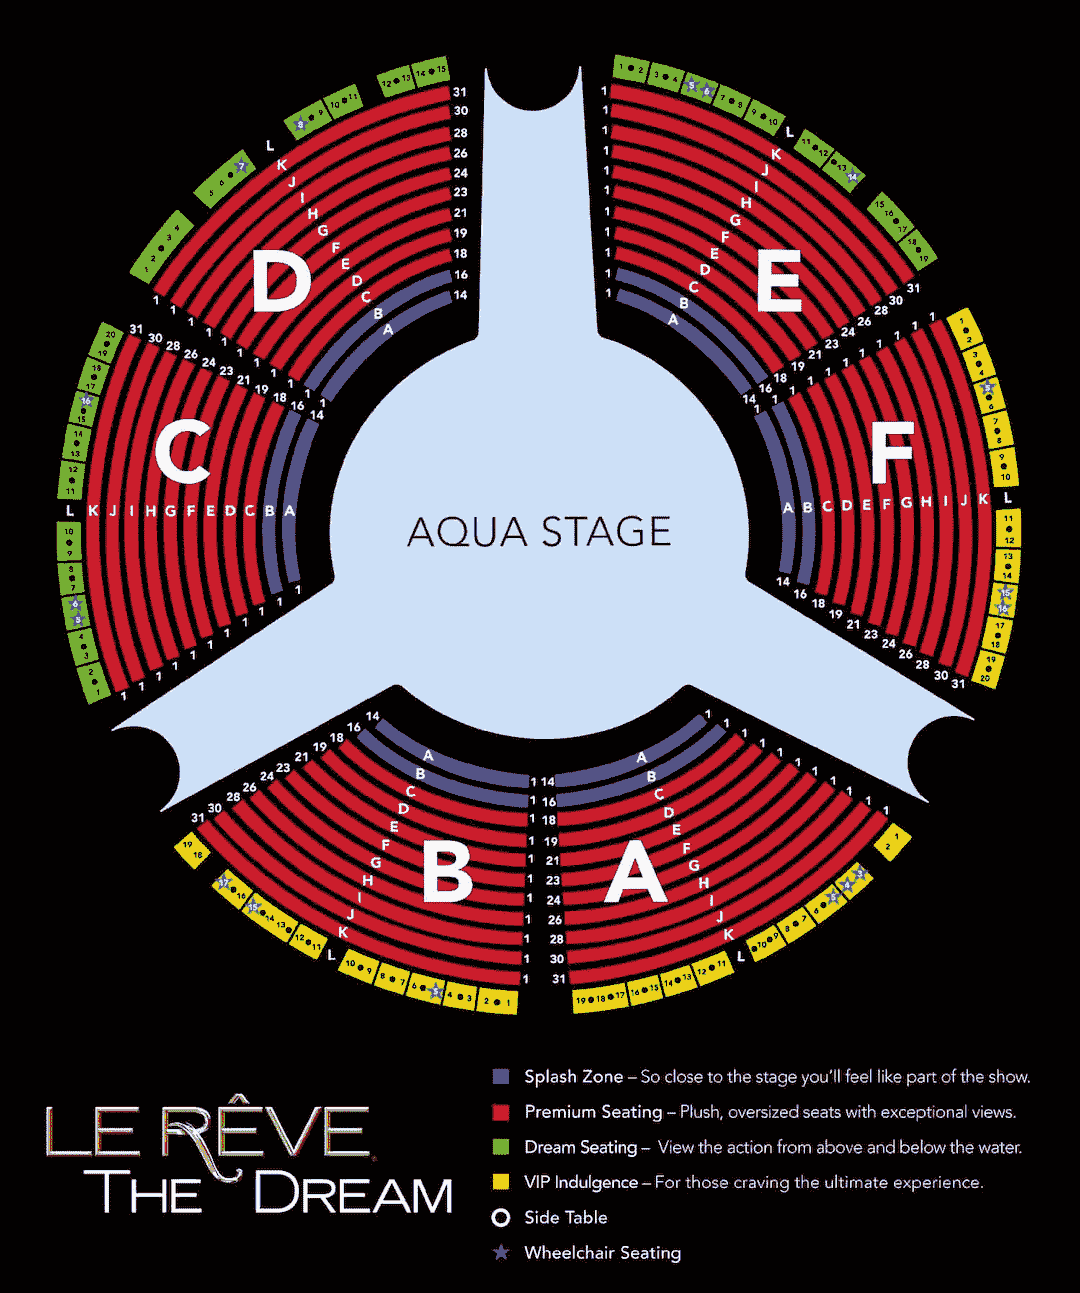 Le-reve-Theater-Seating-Chart